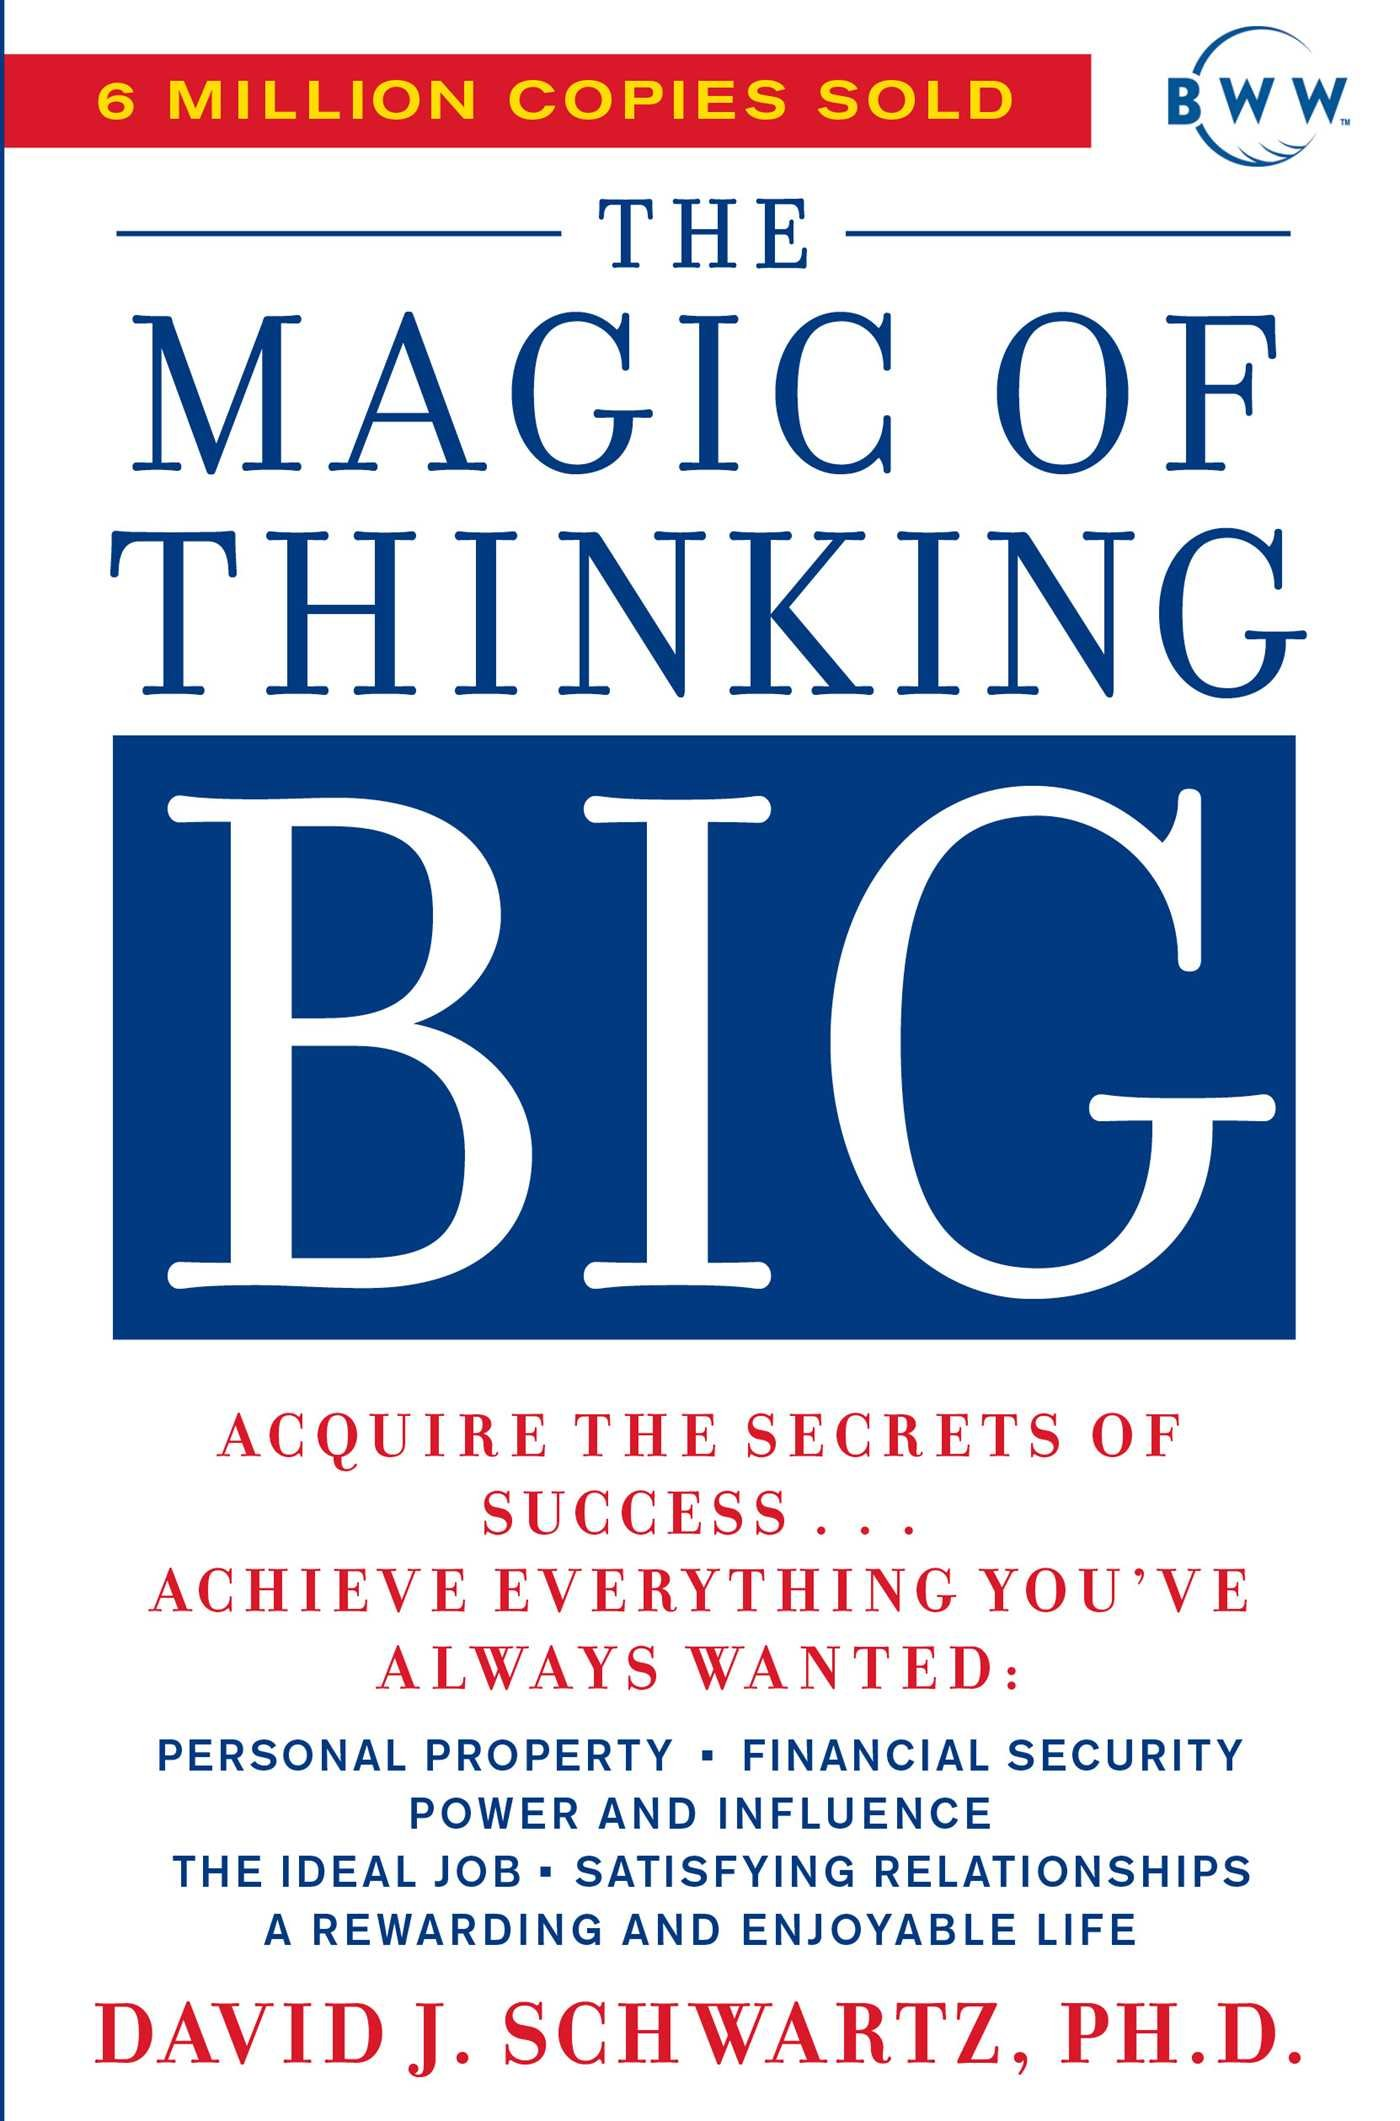 The Magic of Thinking Big- David Schwartz